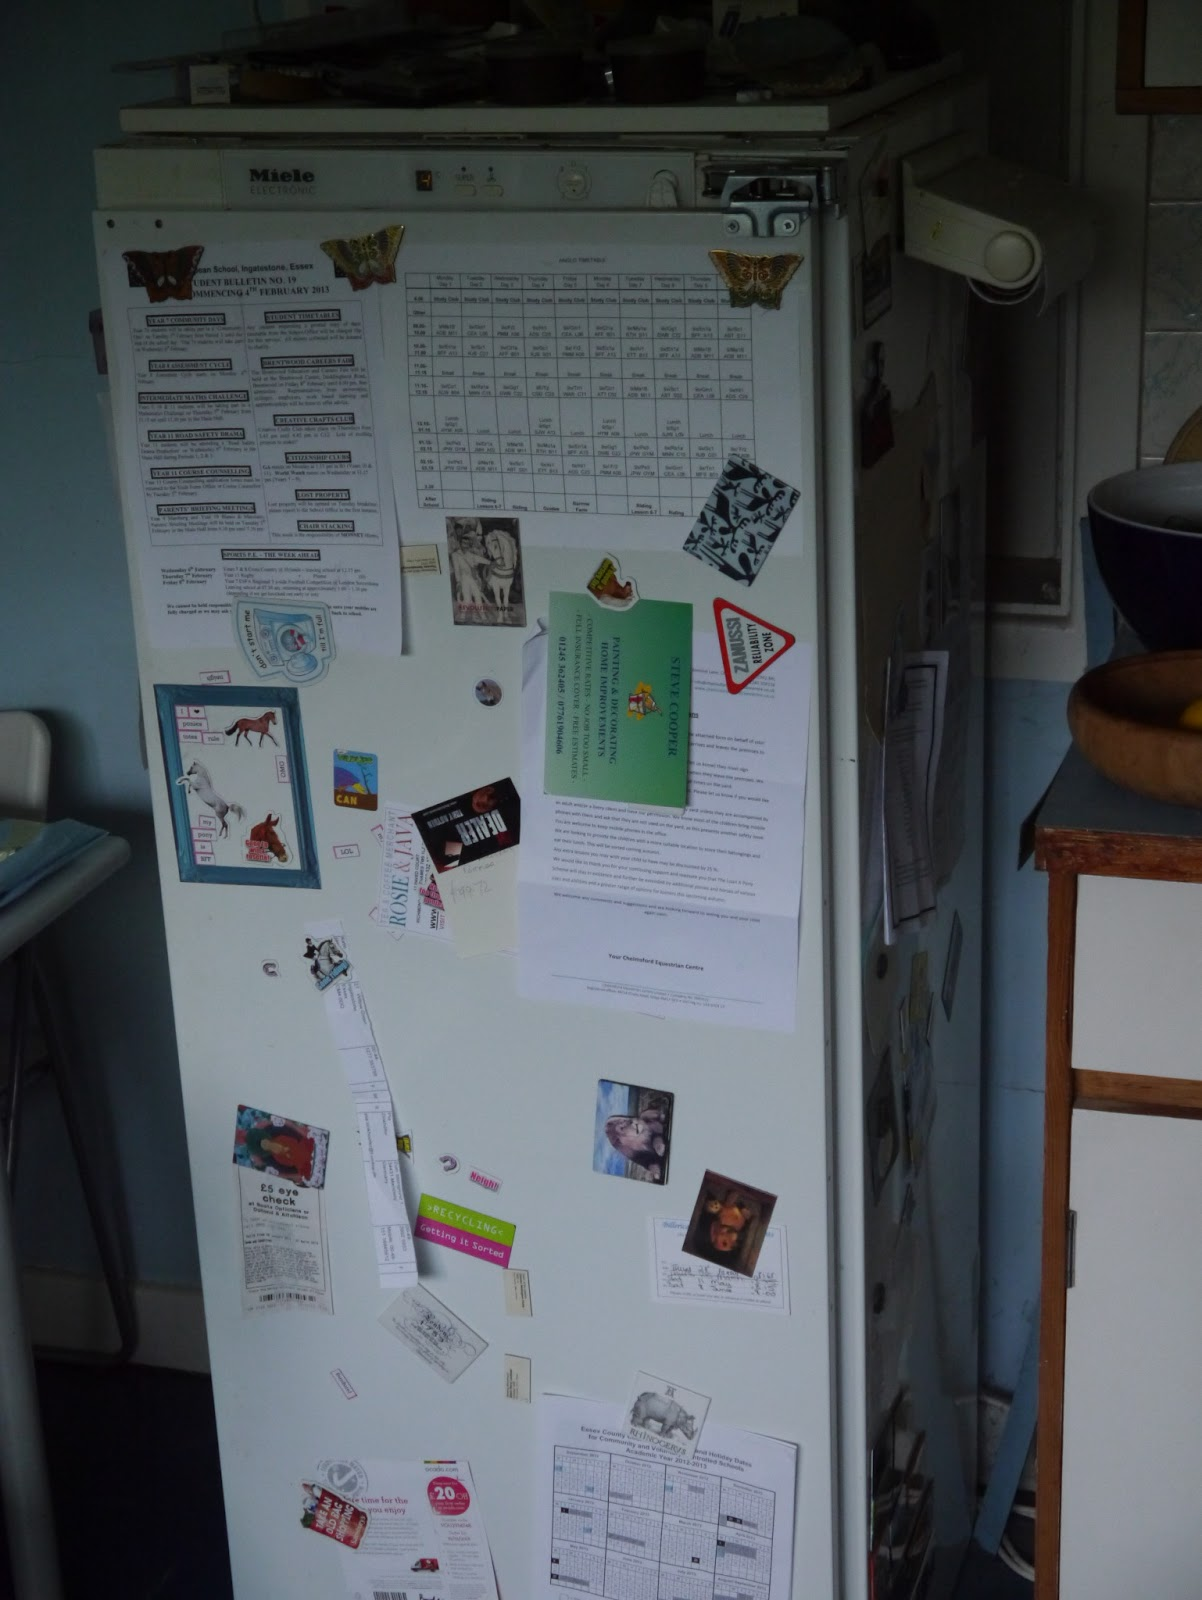 The fridge wall of information